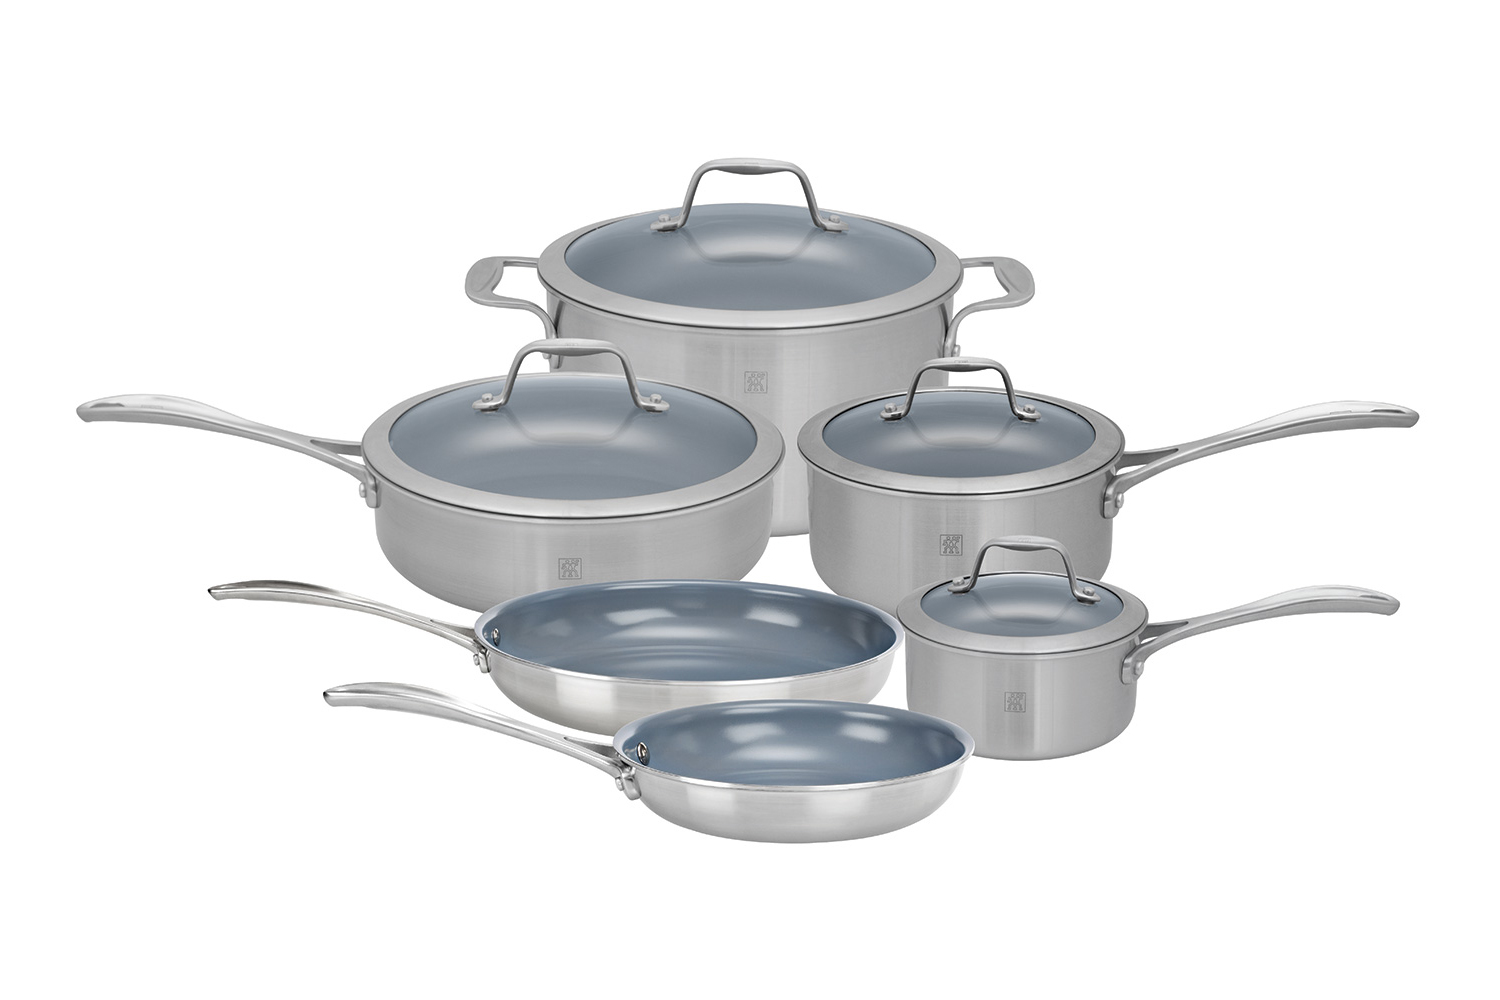 Zwilling Spirit 10 Piece Cookware Set - Ceramic Nonstick Coating